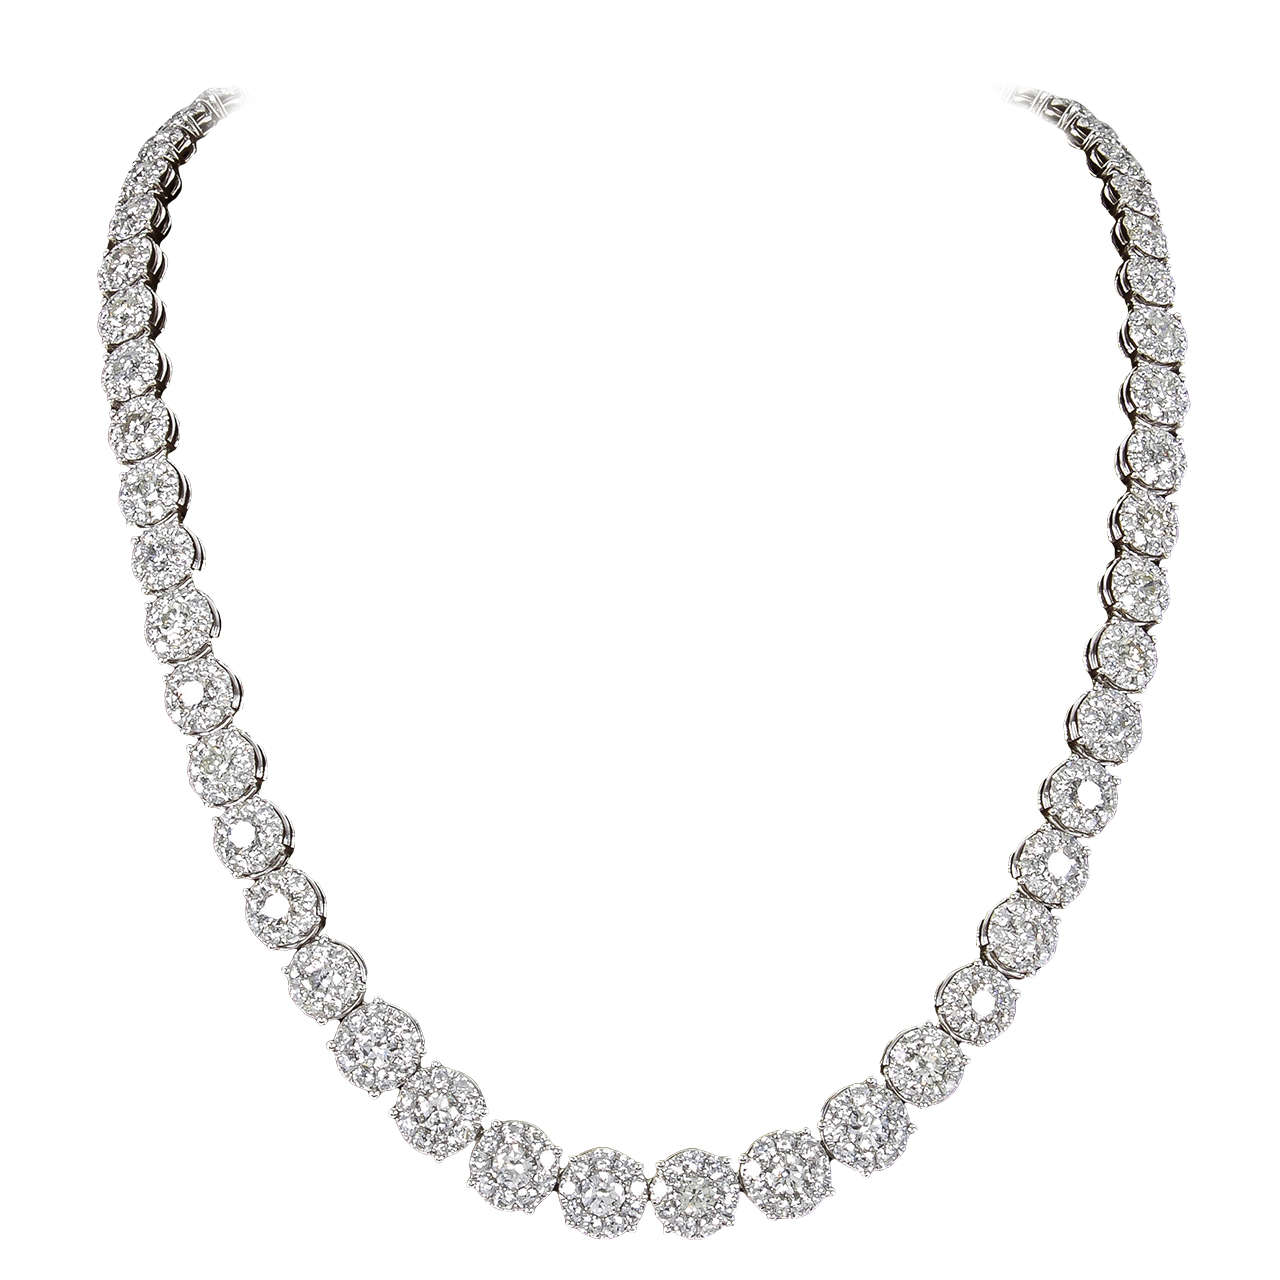 24 carat diamond cluster tennis necklace for sale at 1stdibs 24 carat diamond cluster tennis necklace for sale aloadofball Image collections